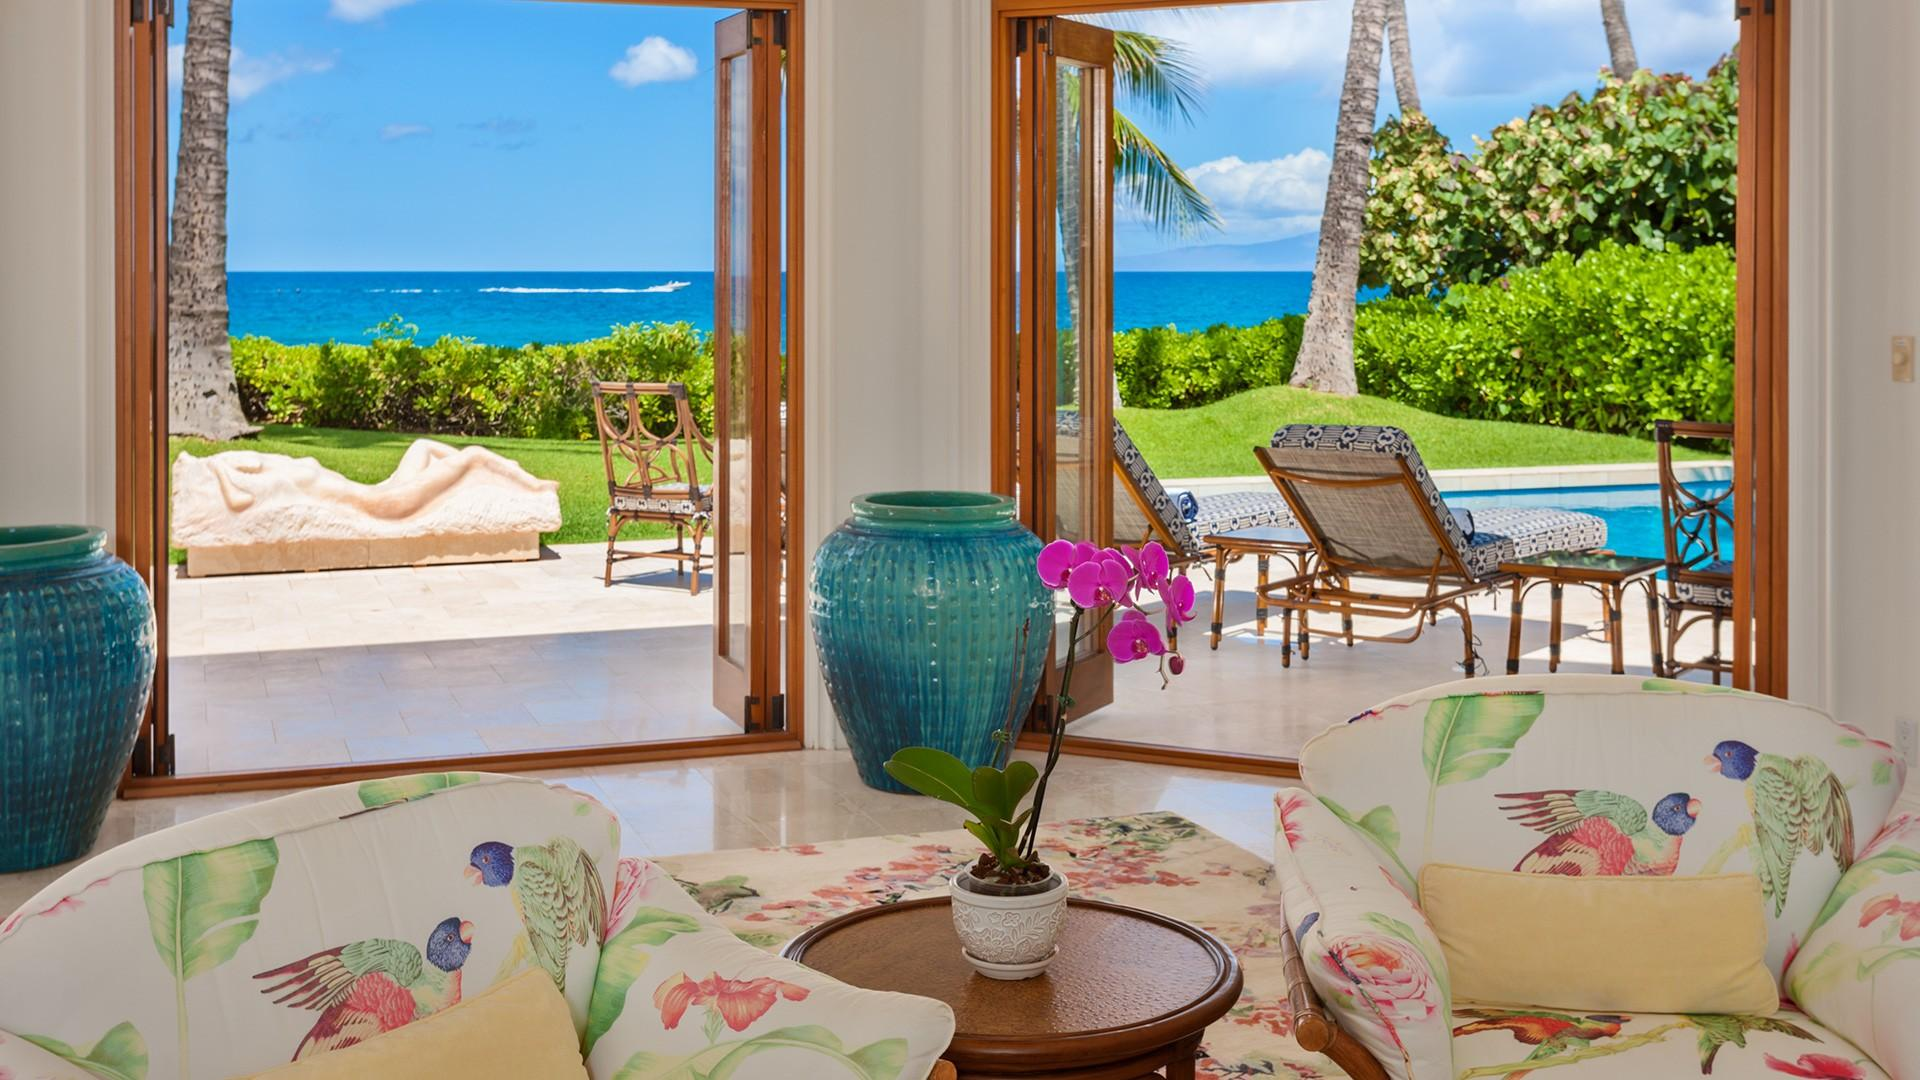 From nearly every room, the home offers stunning views of world-renowned Keawakapu Beach.